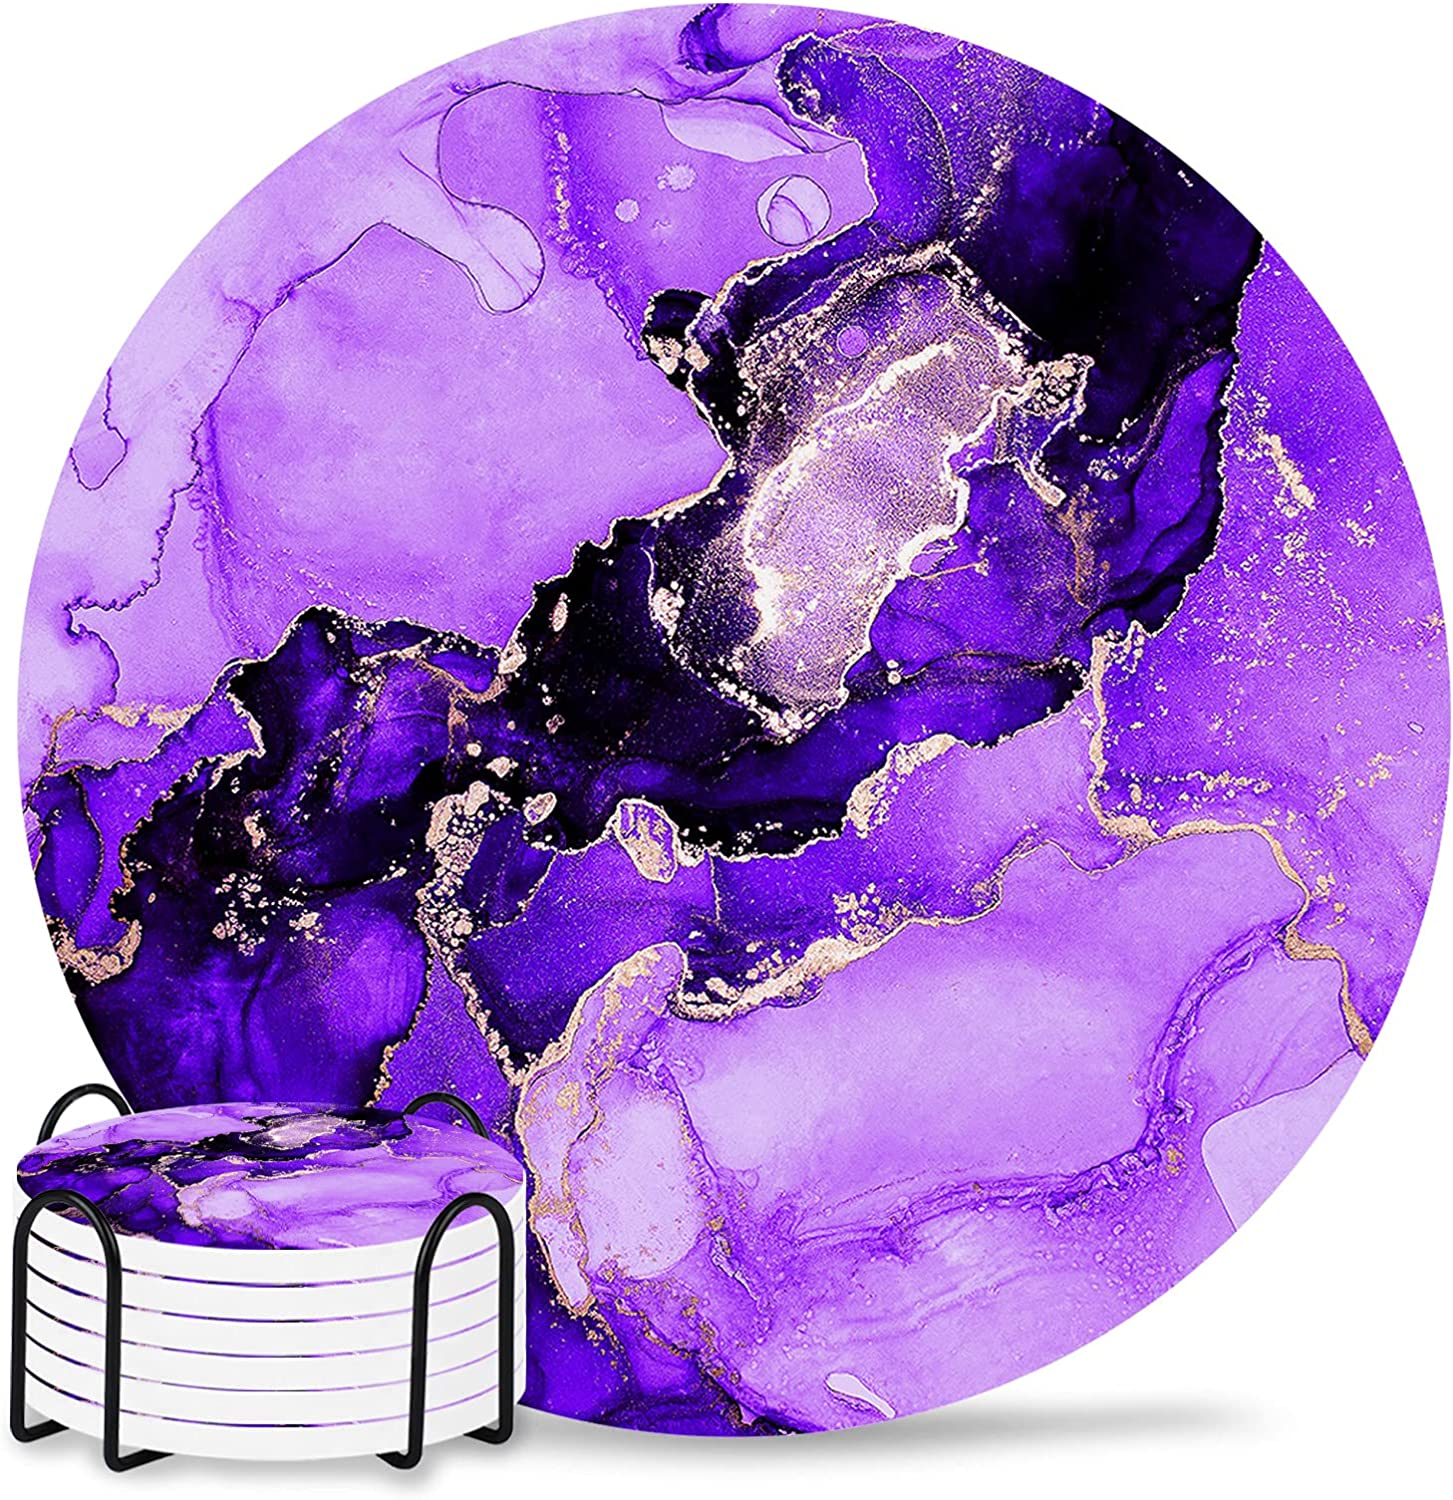 Max 52% OFF Coasters for Drinks Set of 6 with Large discharge sale Holder Pur Abstract Ink Paint